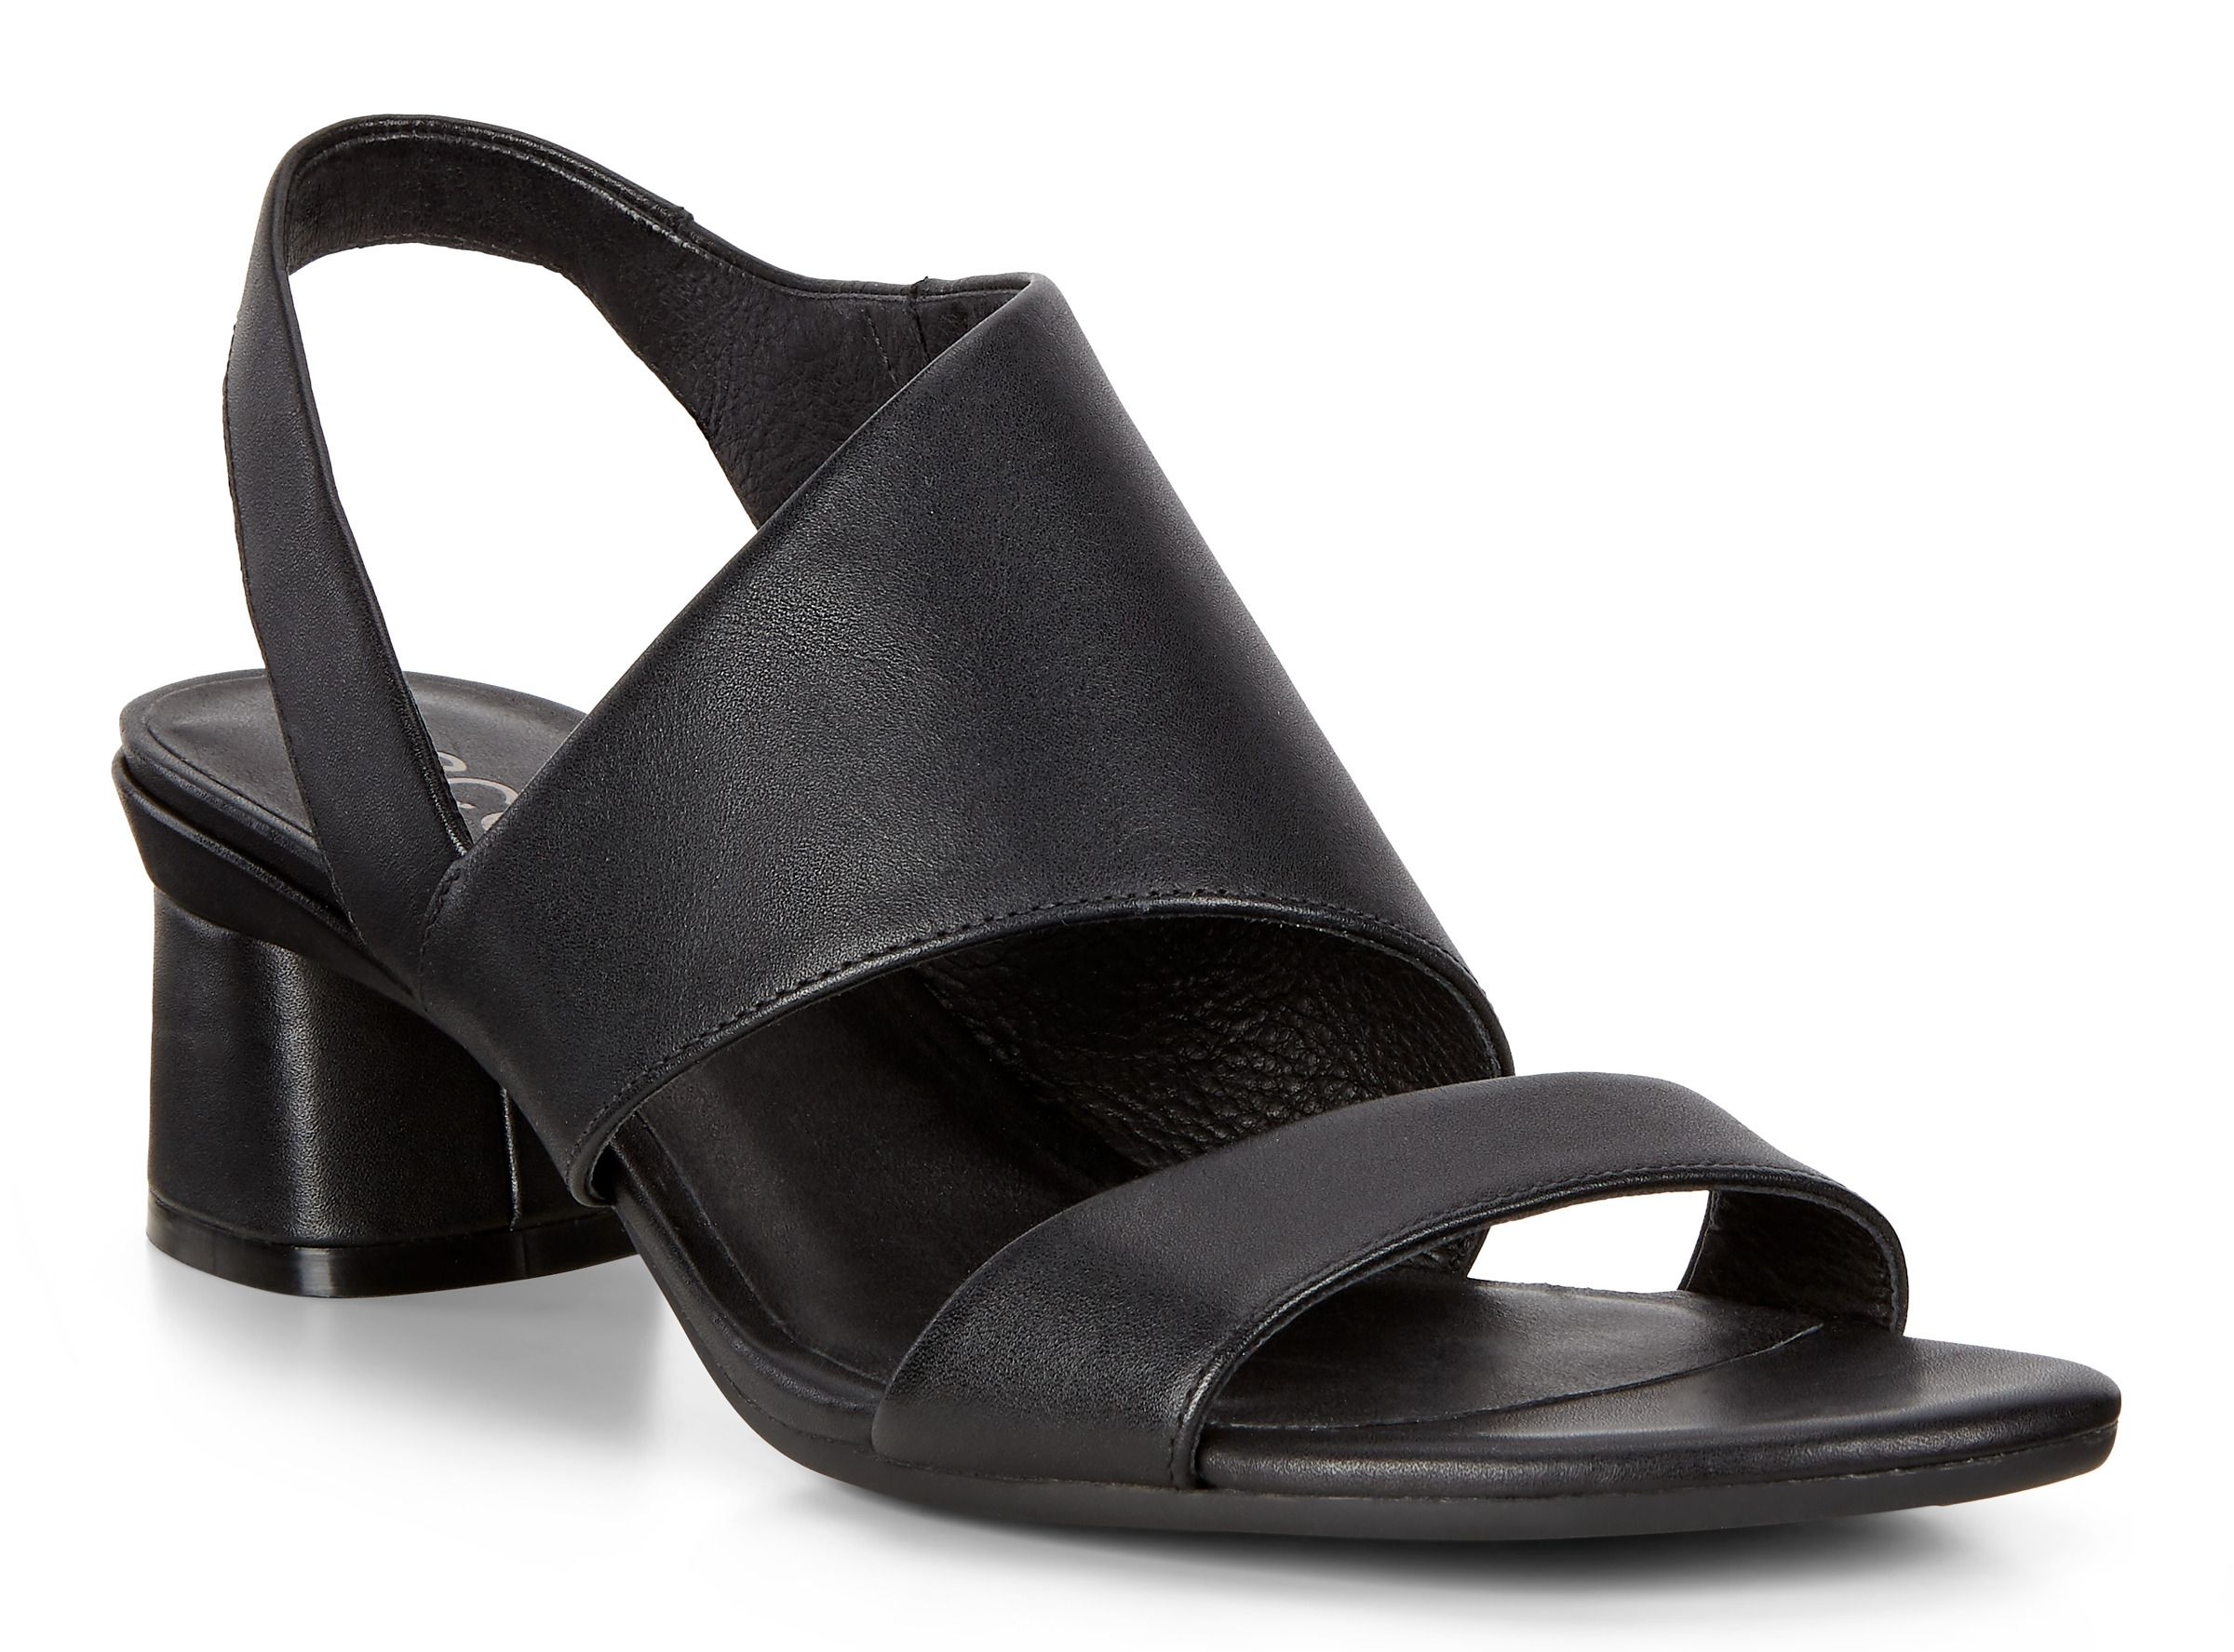 Ecco Women's Soft 5 Cross Strap Sandal Black